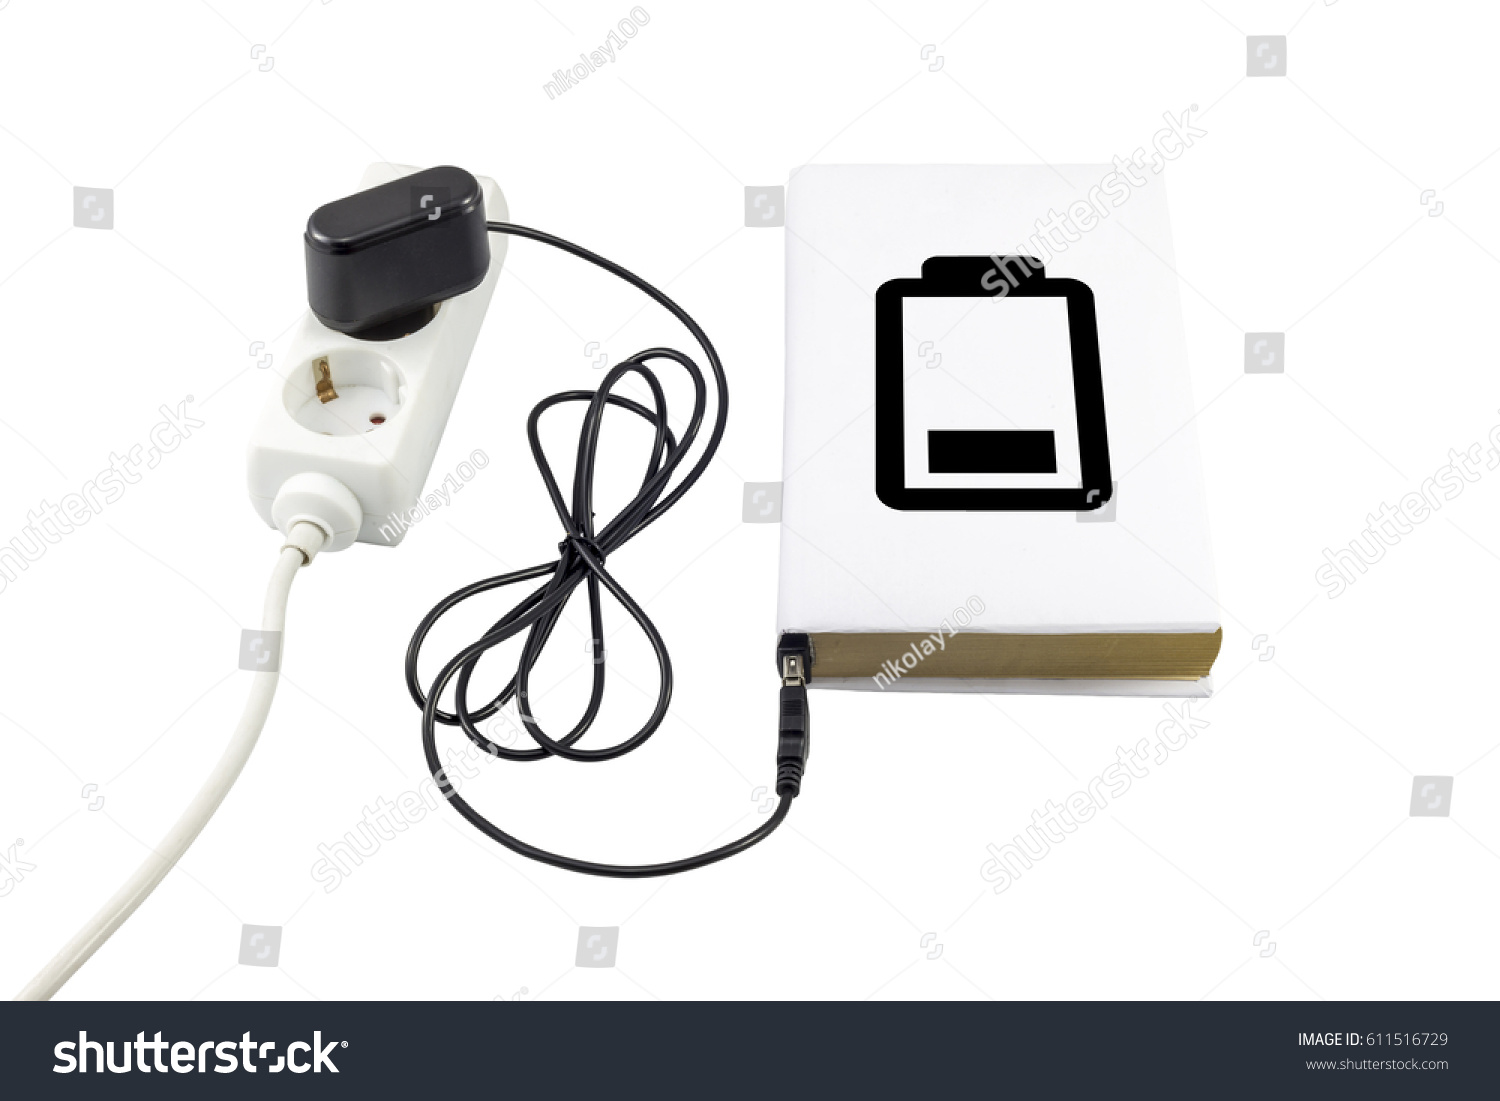 Book Connected Usb Charger Battery Symbol Stock Photo Edit Now